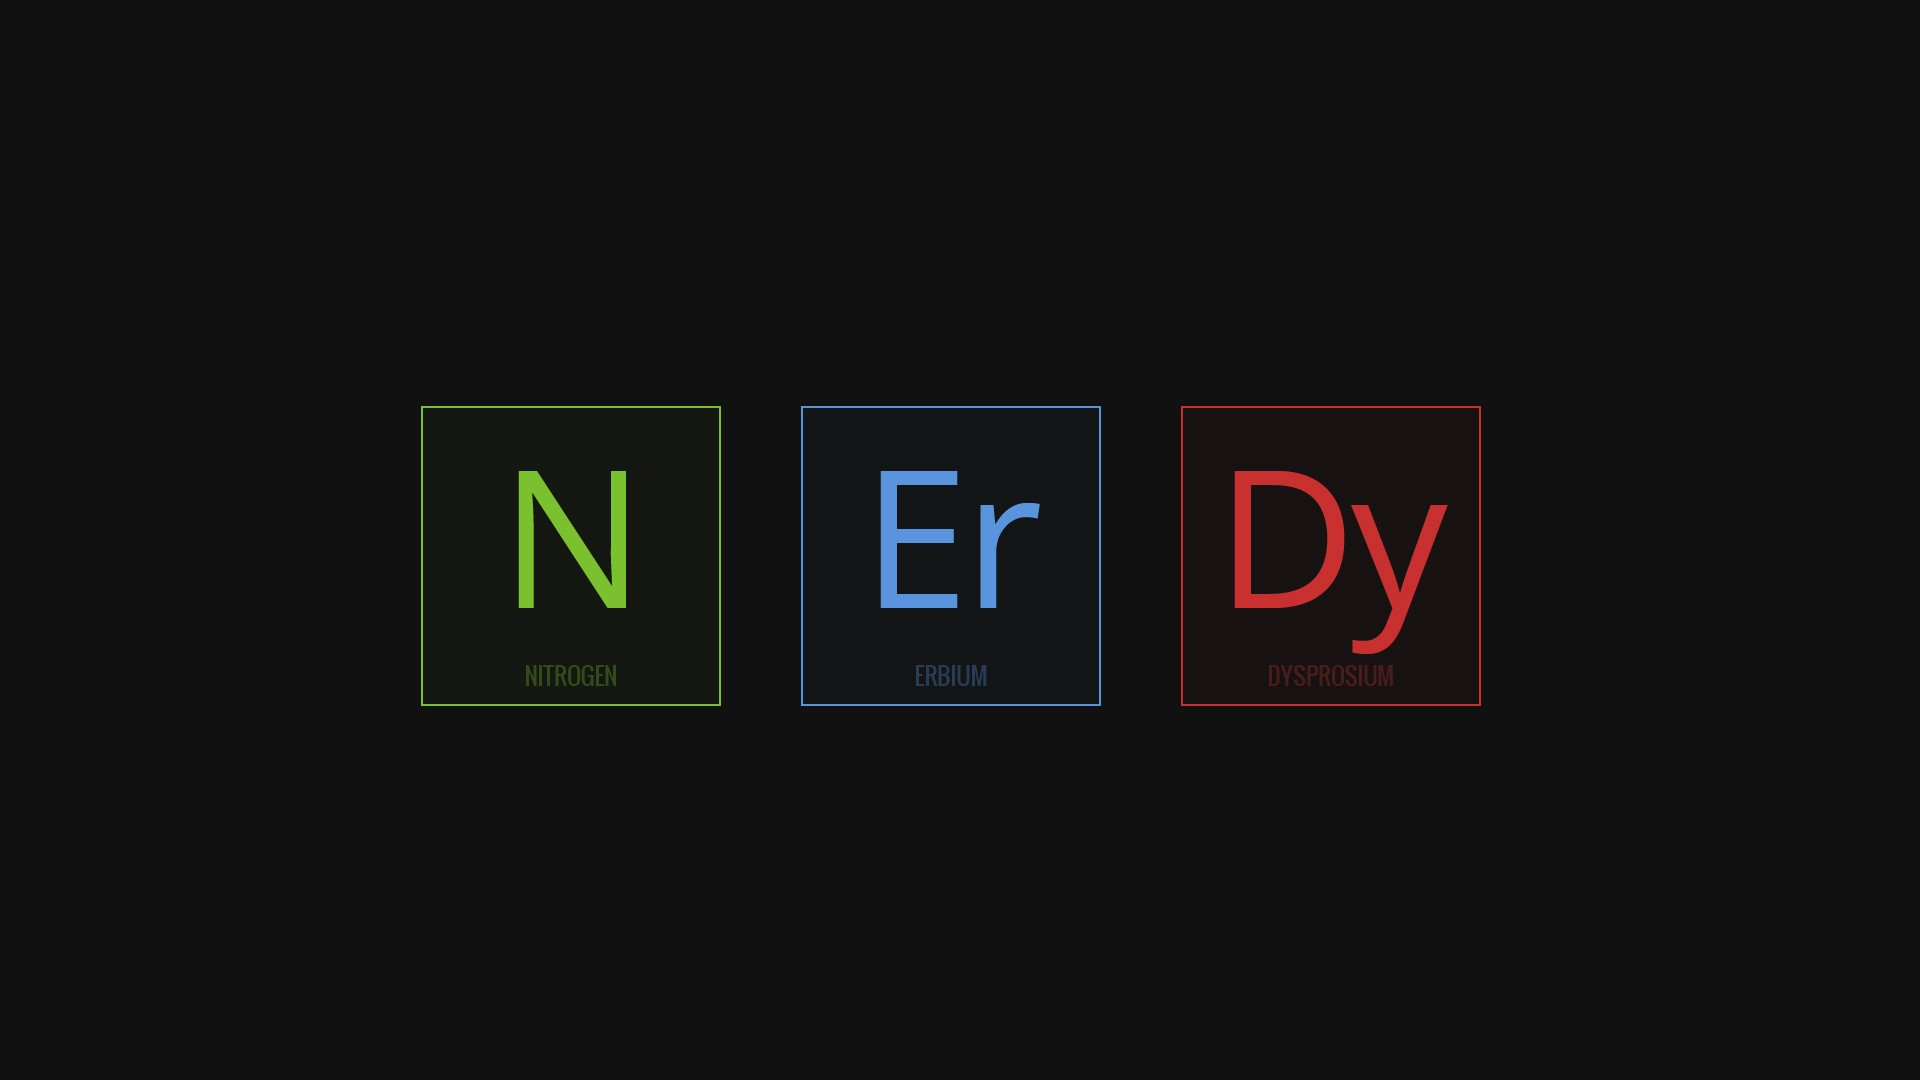 Science Nerds Minimalism HD Typography 4k Wallpapers Images